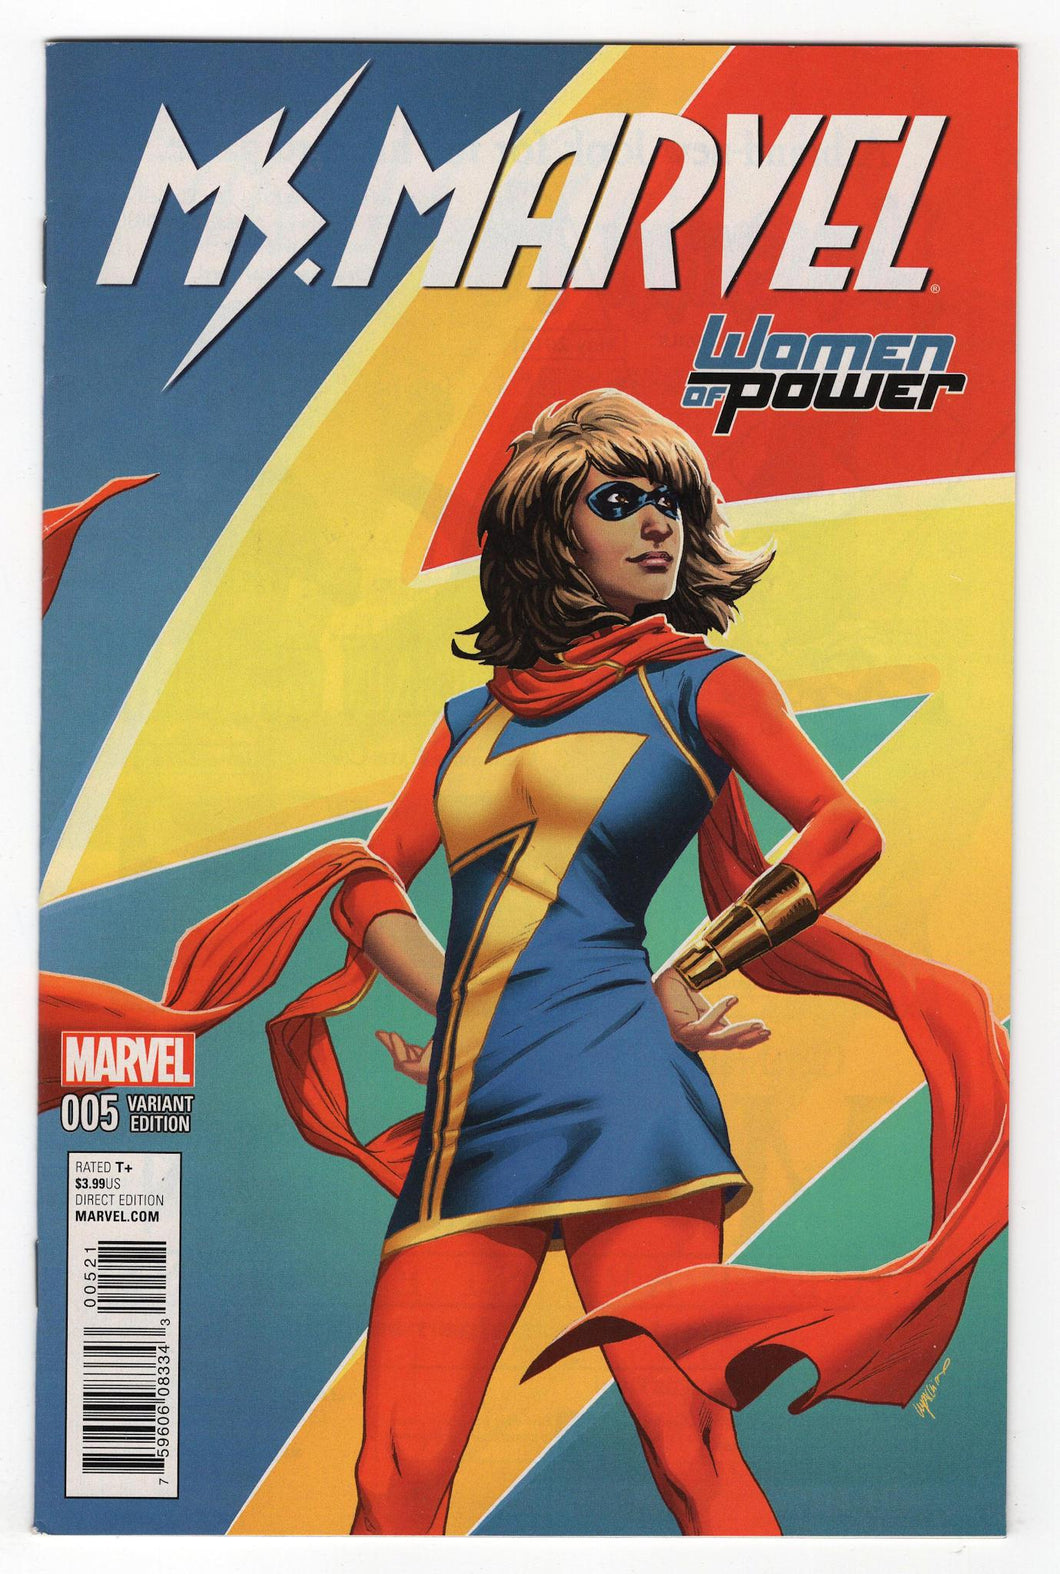 Ms Marvel #5 Cover Front